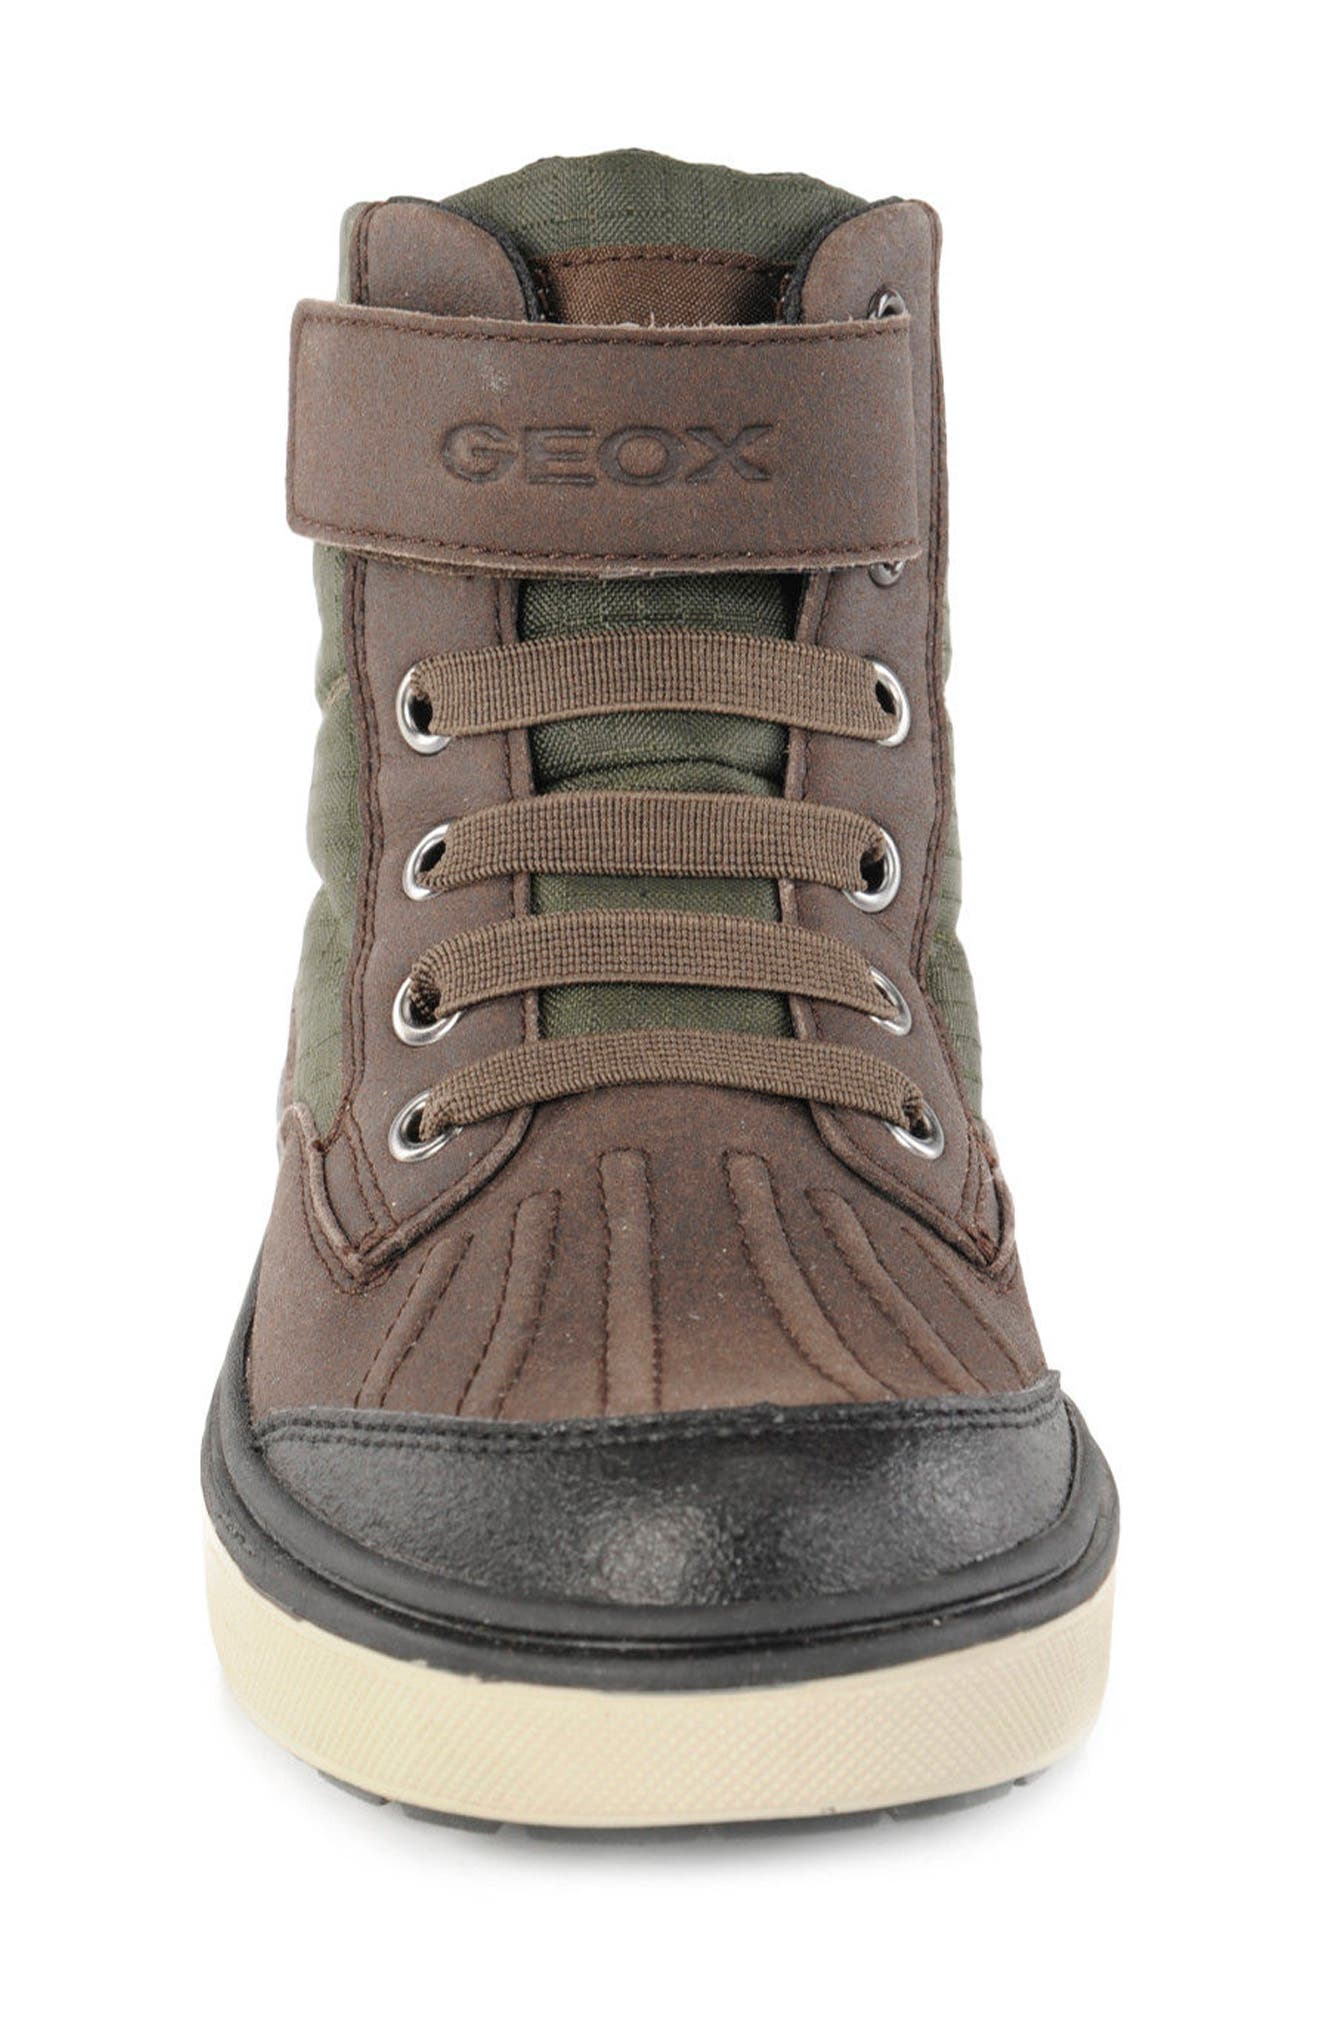 'Mattias - ABX' Amphibiox<sup>®</sup> Waterproof Sneaker,                             Alternate thumbnail 4, color,                             Green/ Brown